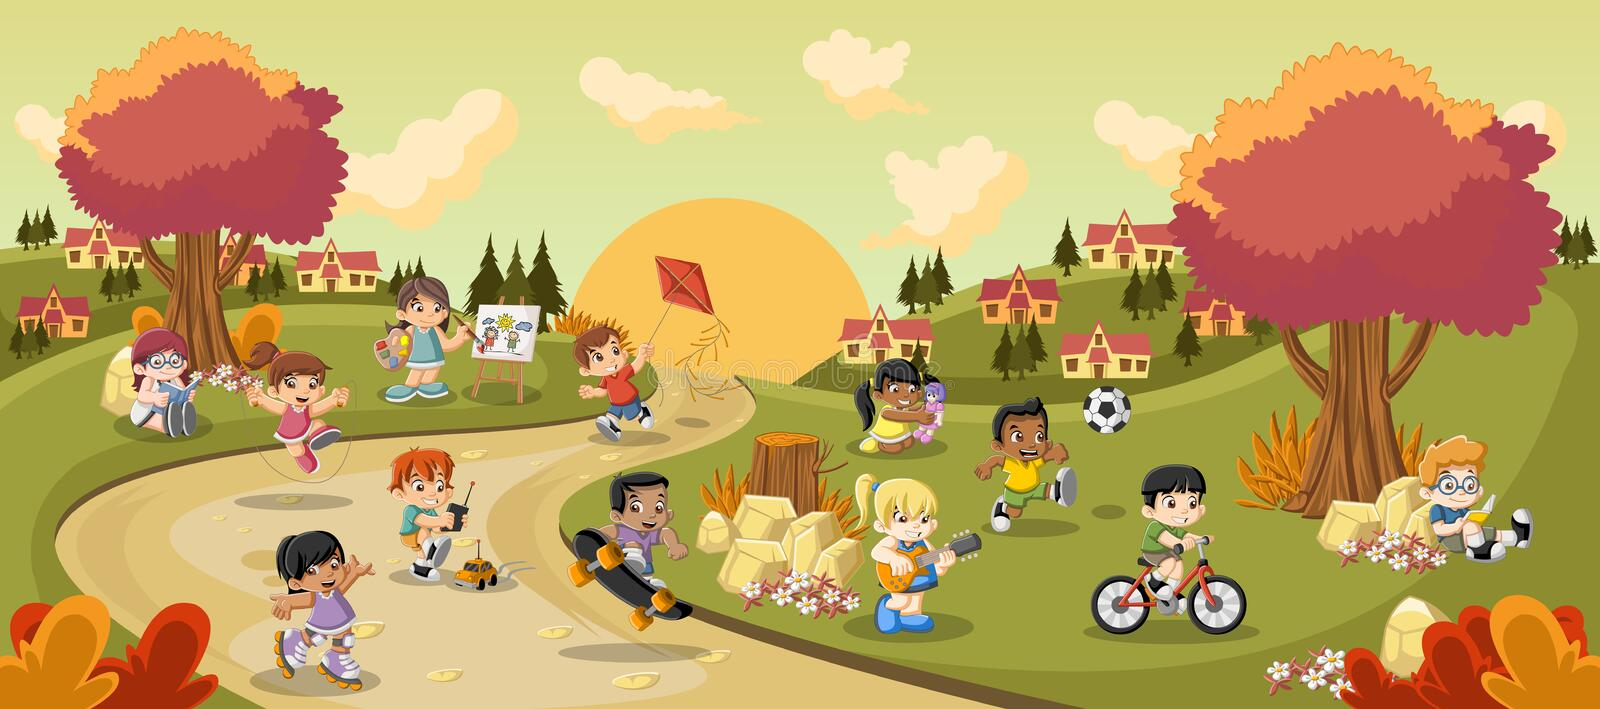 Colorful park in the city with cartoon children playing stock illustration